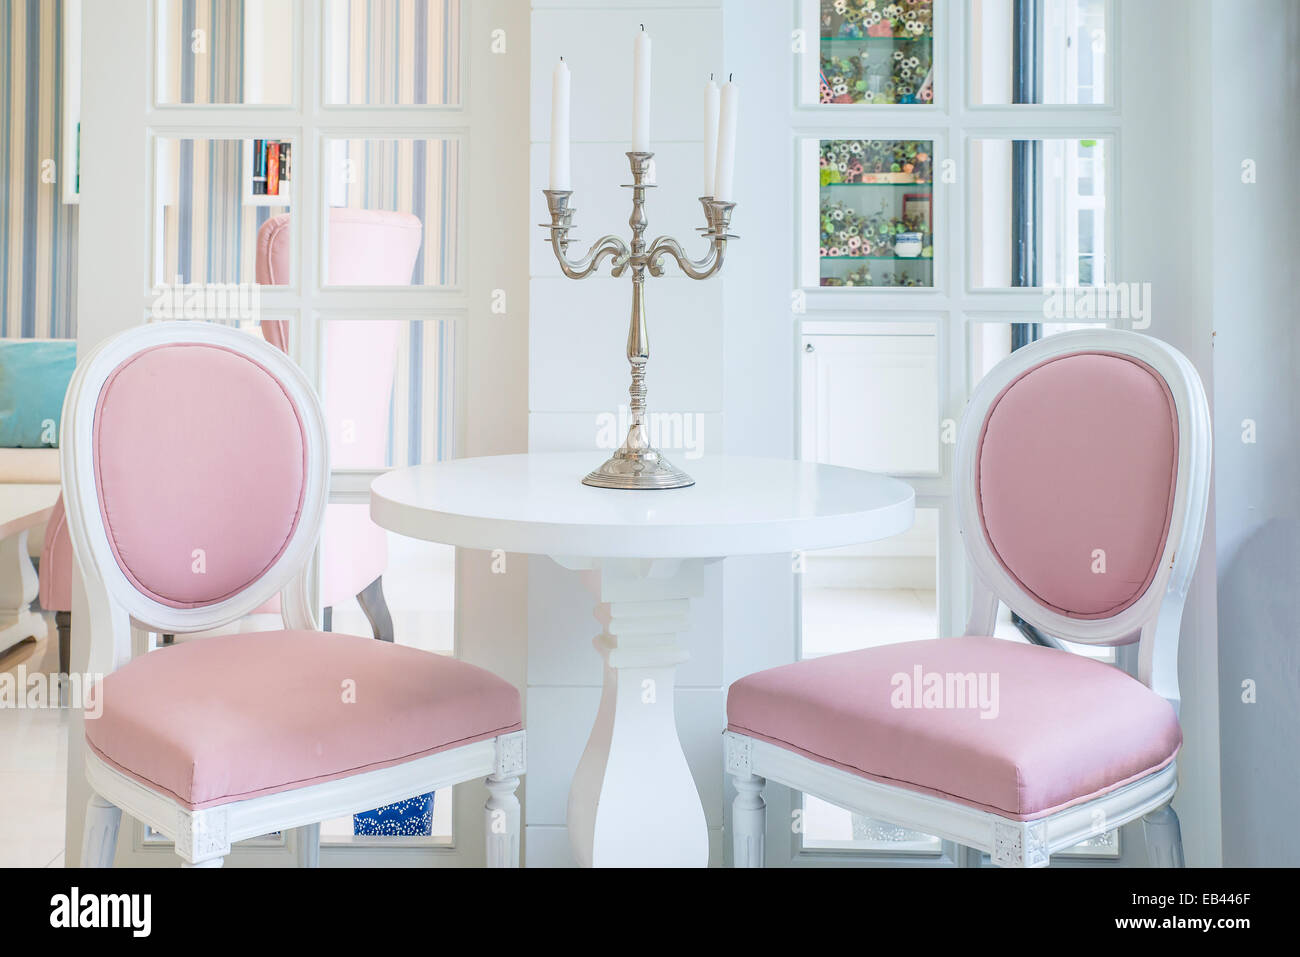 Chair Cover White Pink Stock Photos & Chair Cover White Pink Stock ...